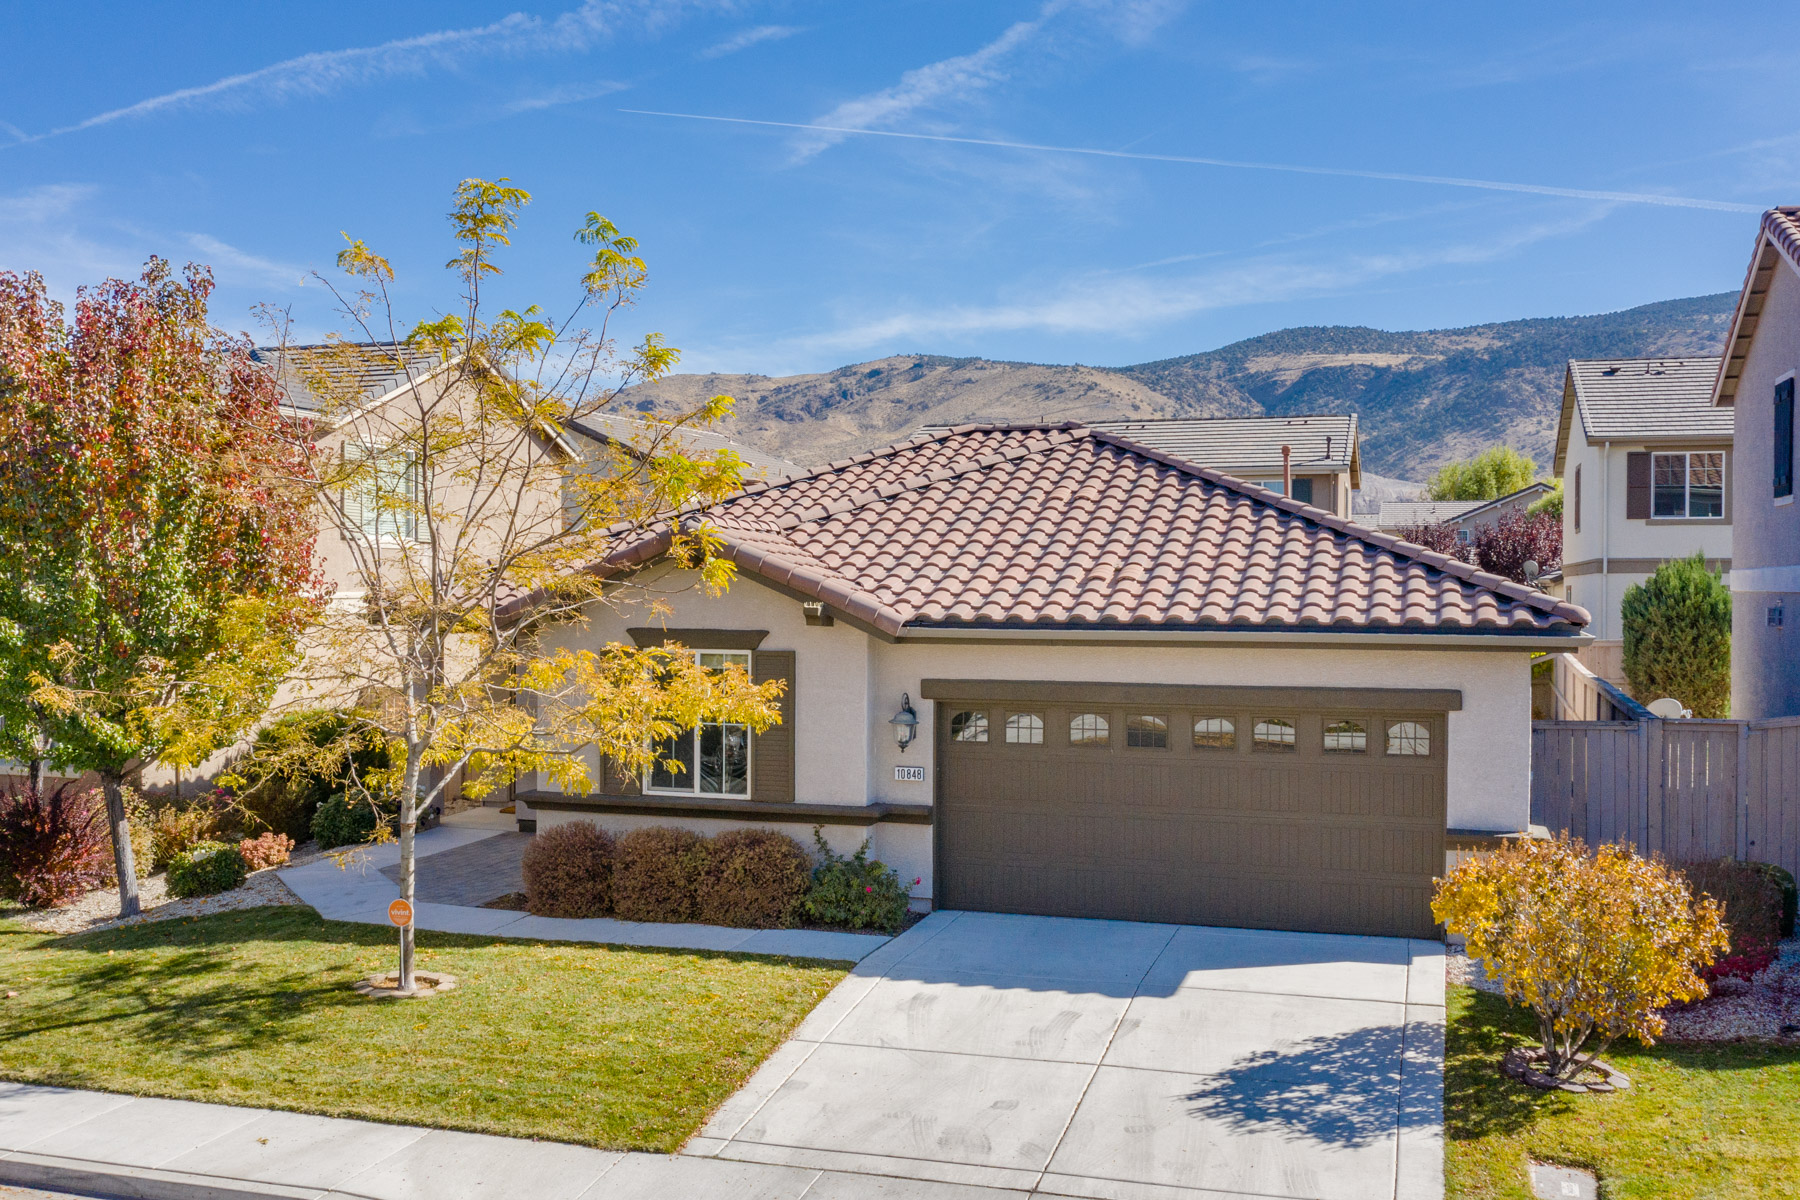 Single Family Homes for Active at 10848 Oakhaven Drive, Reno, Nevada 10848 Oakhaven Drive Reno, Nevada 89521 United States